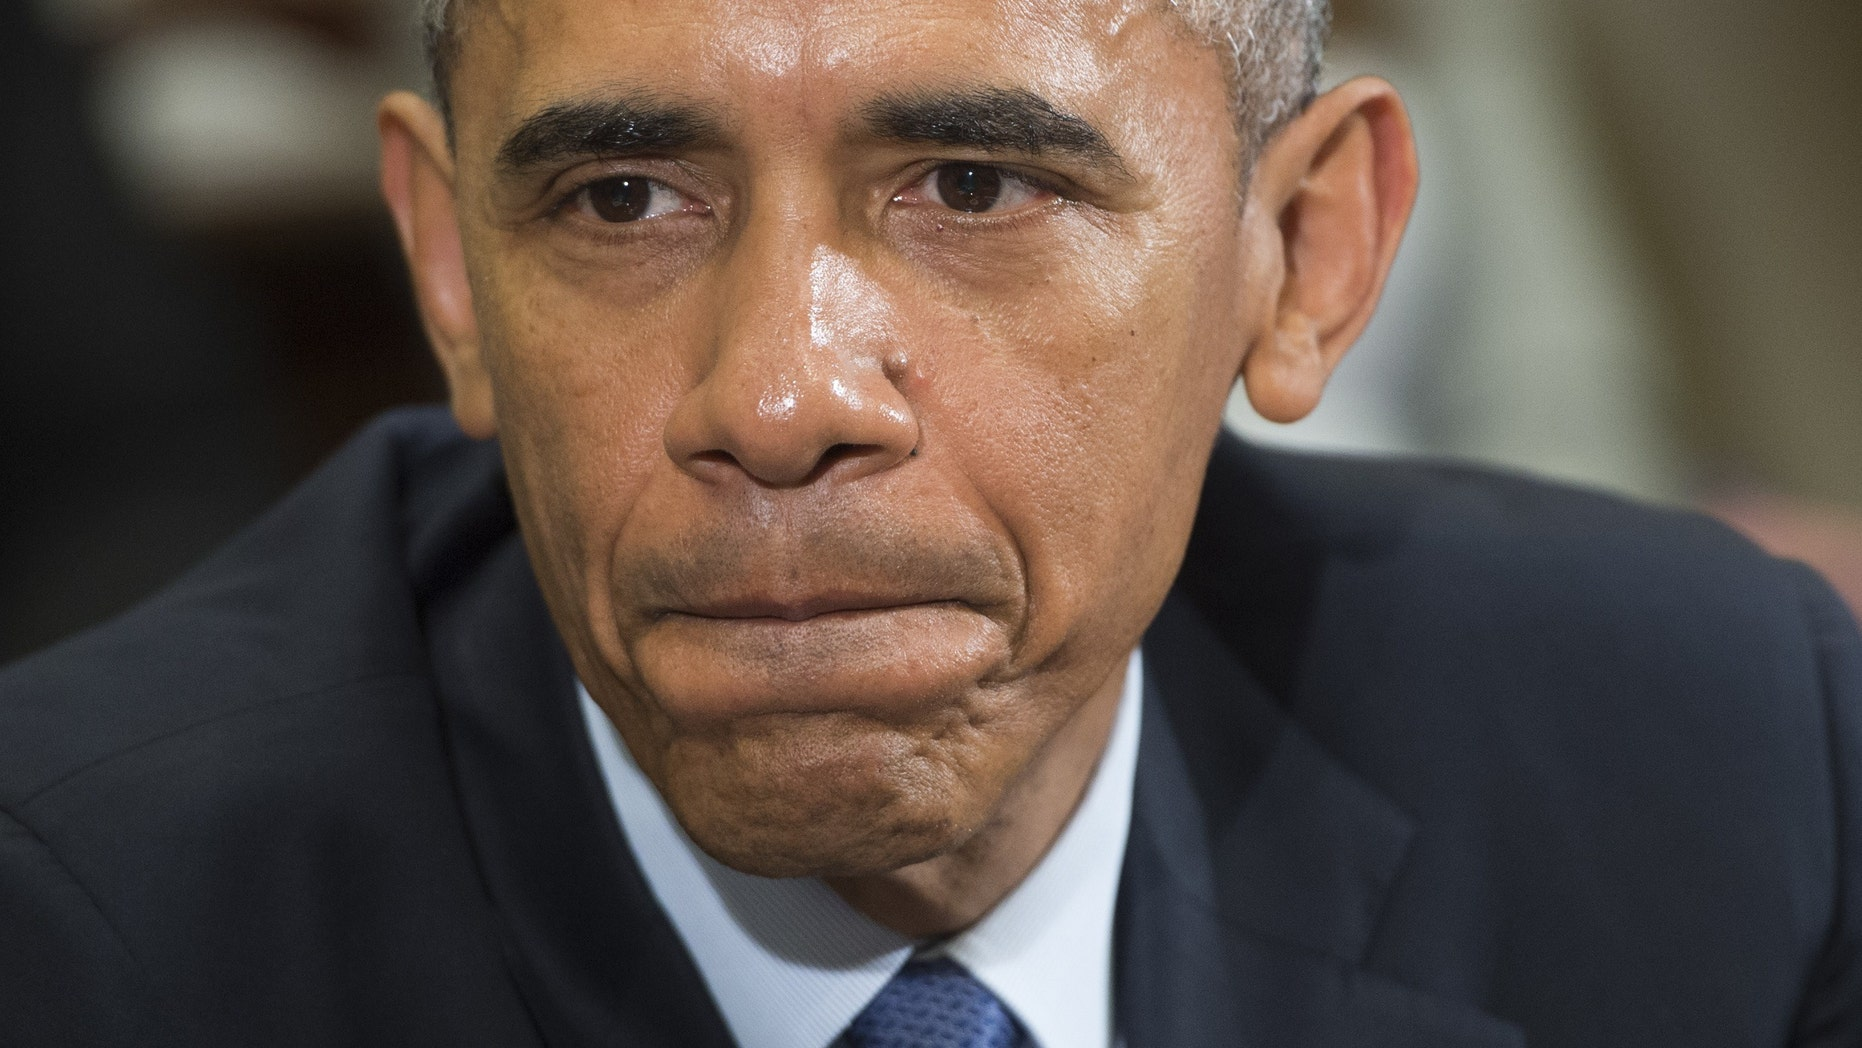 """US President Barack Obama speaks about the report of a video released by the Islamic State depicting the killing of a Jordanian fighter pilot, during an unrelated meeting with Americans who say they have benefited from the Affordable Care Act, commonly known as """"Obamacare,"""" in the Roosevelt Room of the White House in Washington, DC, February 3, 2015. (Photo credit should read SAUL LOEB/AFP/Getty Images)"""